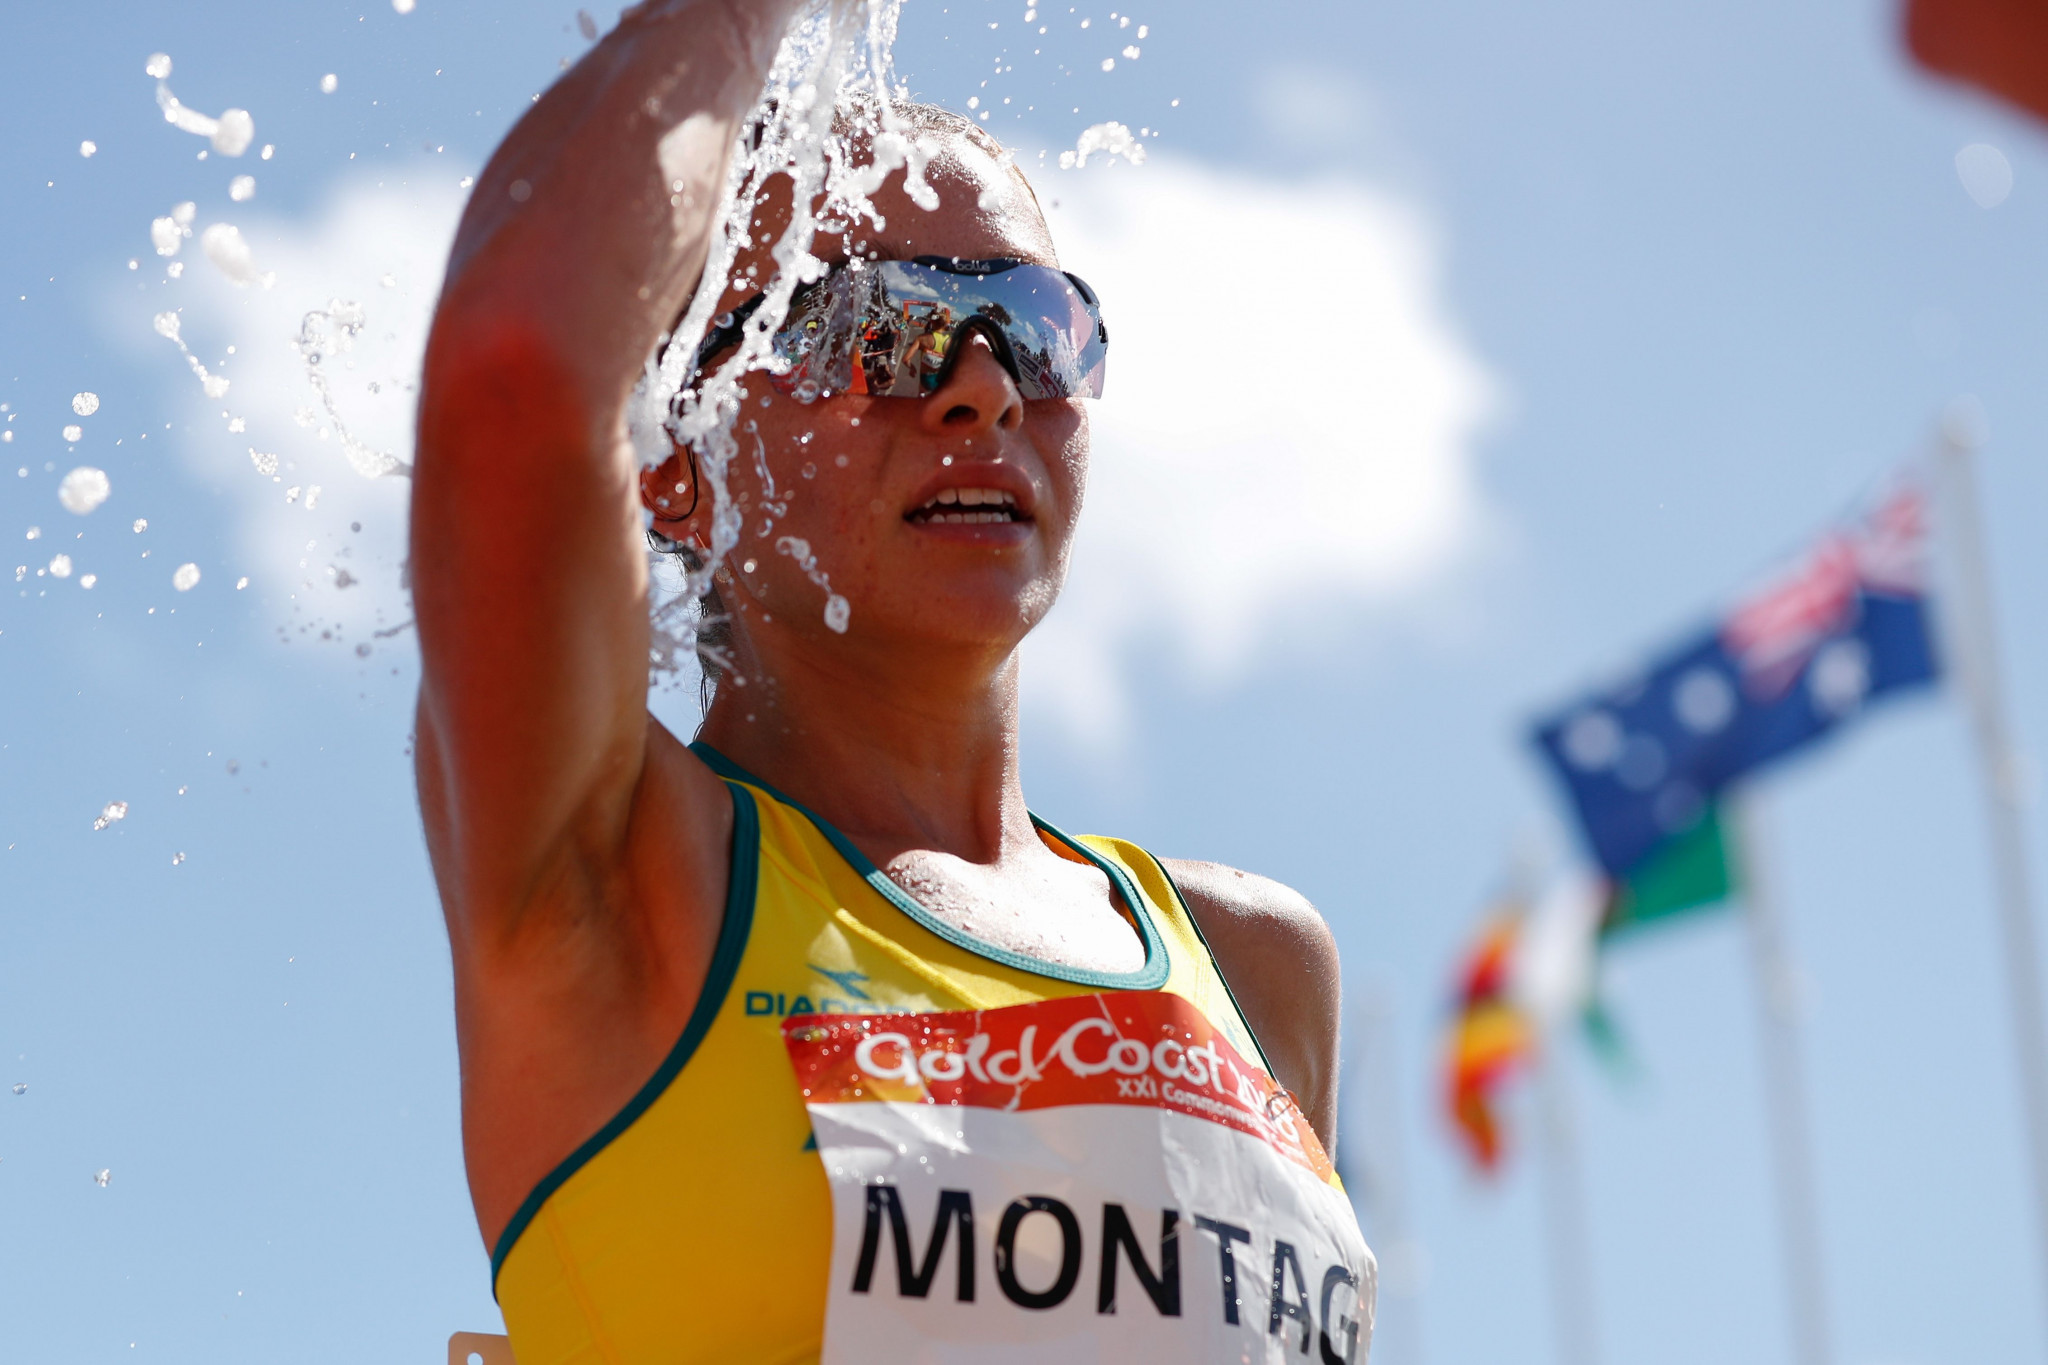 Jemima Montag qualified for her first Olympics ©Getty Images